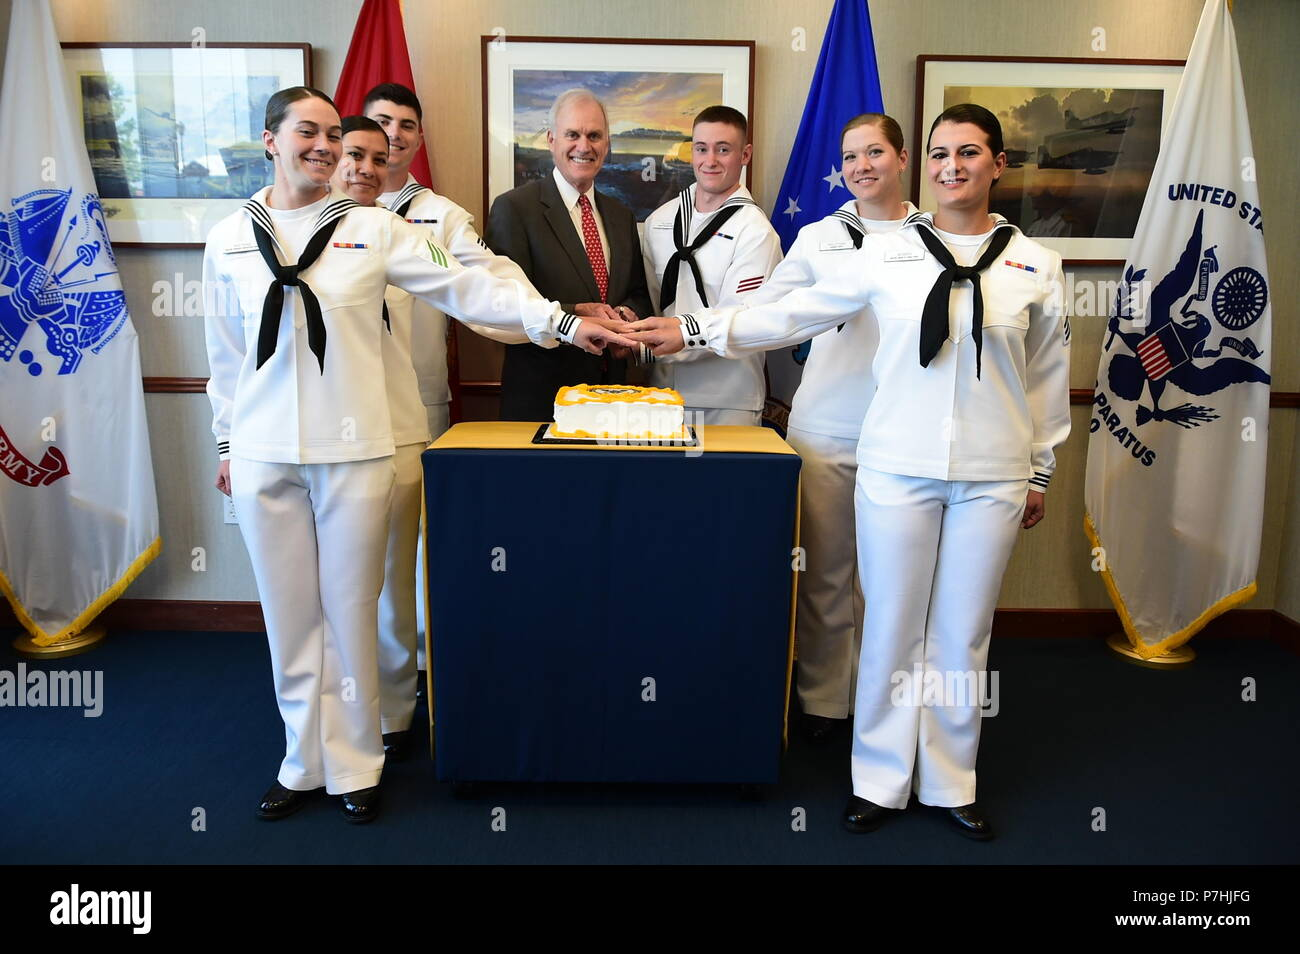 180629-N-CM124-0029  GREAT LAKES, Ill. (June 29, 2018) Secretary of the Navy Richard V. Spencer cuts the cake with the recruit award winners at a post-graduation reception, June 29, 2018 at Midway Ceremonial Drill Hall at Recruit Training Command (RTC). Spencer served as the reviewing officer for the pass-in-review graduation ceremony where more than 650 recruits graduated from the Navy's only boot camp. Spencer was making his second visit to RTC since being named secretary of the Navy on Aug. 3, 2017. About 38,000 to 40,000 recruits graduate annually from RTC. (U.S. Navy photo by Susan Krawcz - Stock Image